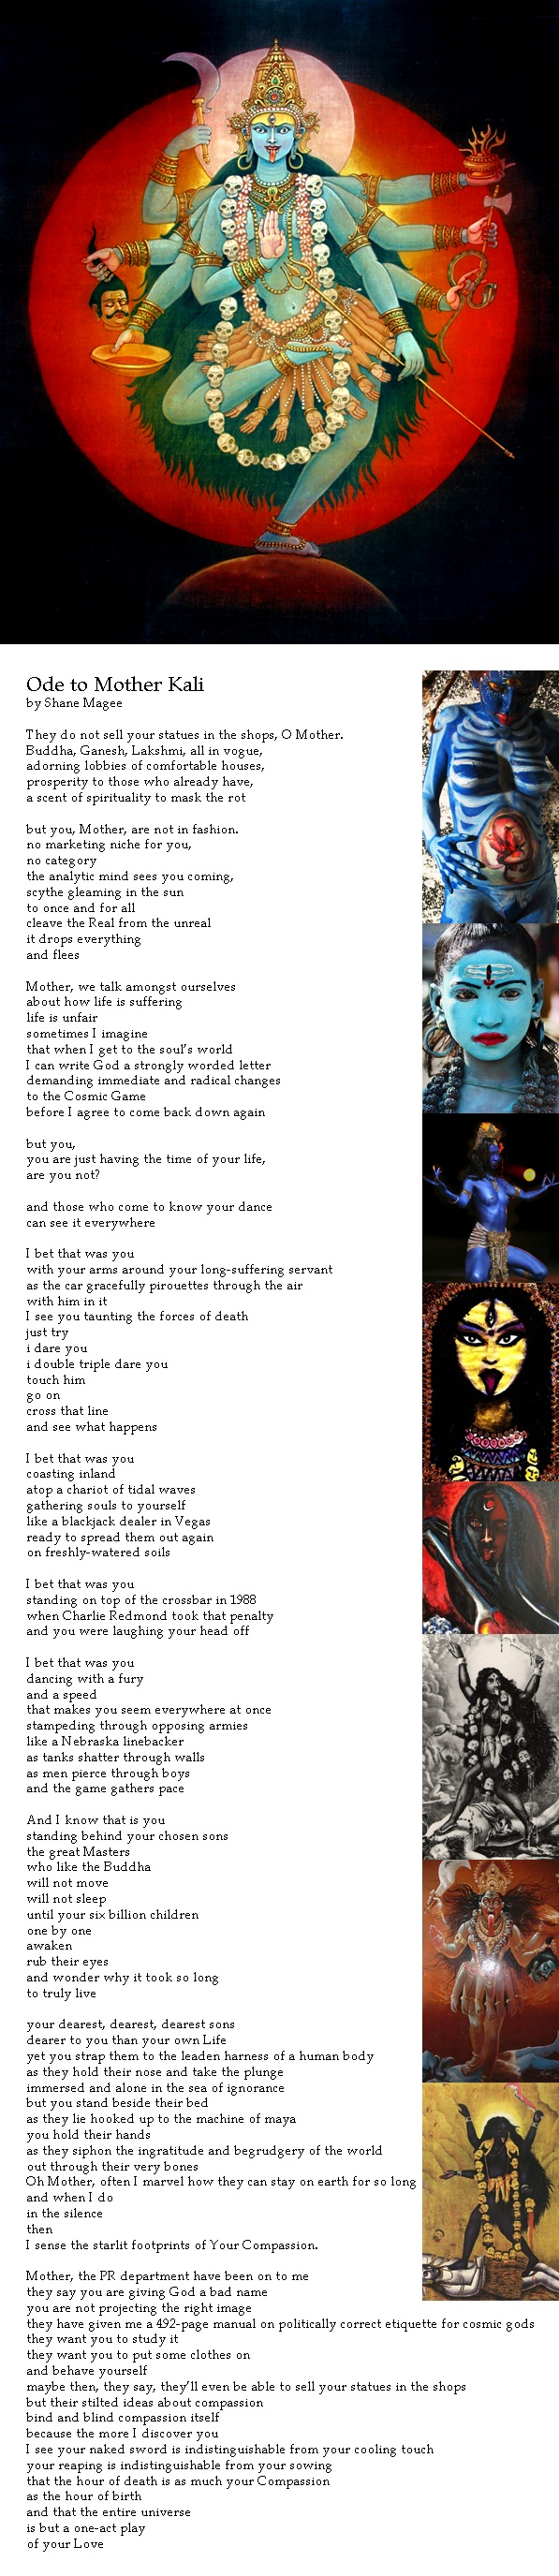 Ode to Mother Kali